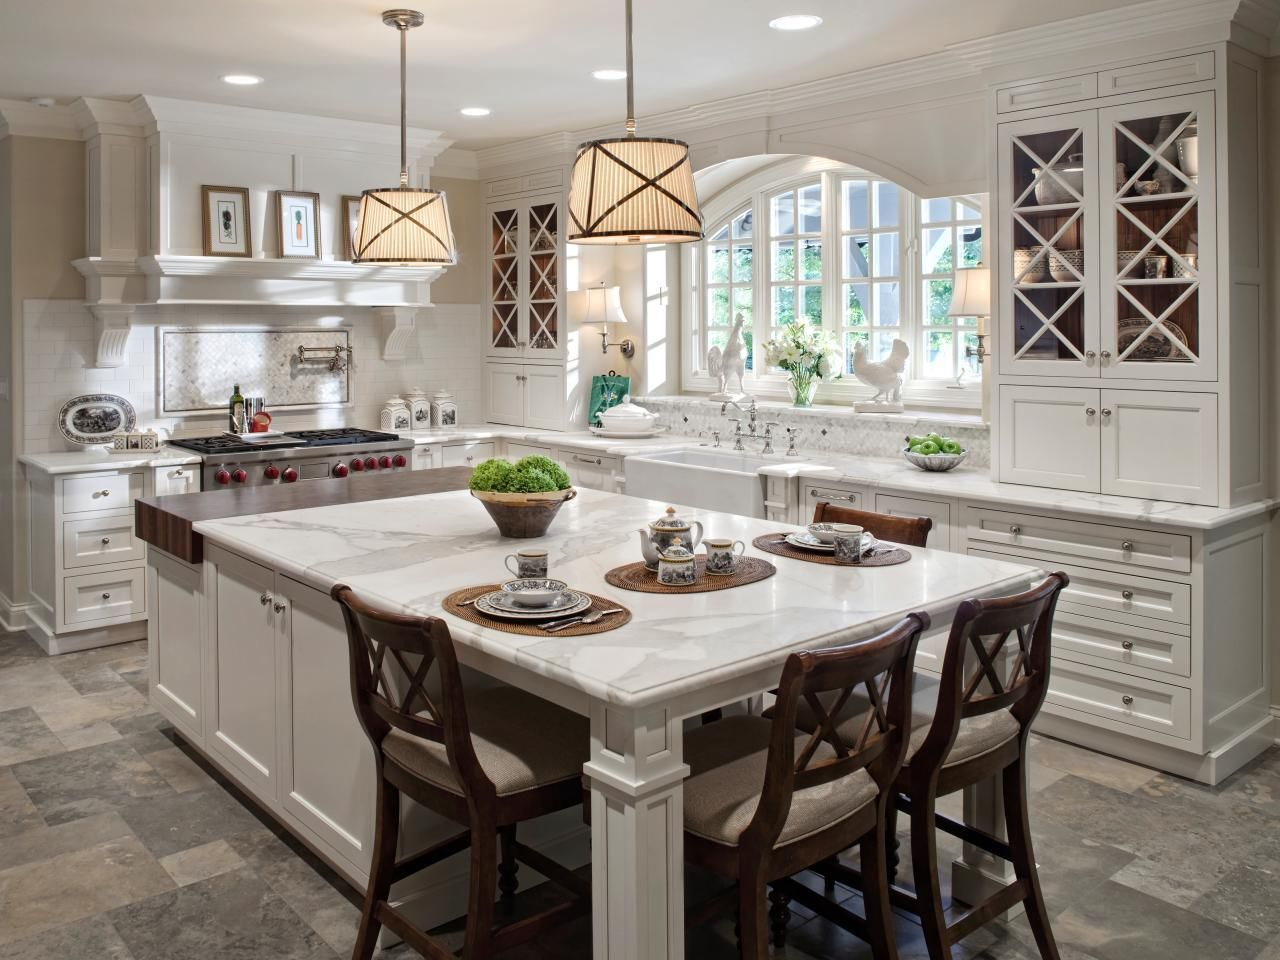 Eat In Kitchen Island Aid Wall Oven Traditional White Large Window View Gallery Small Functional